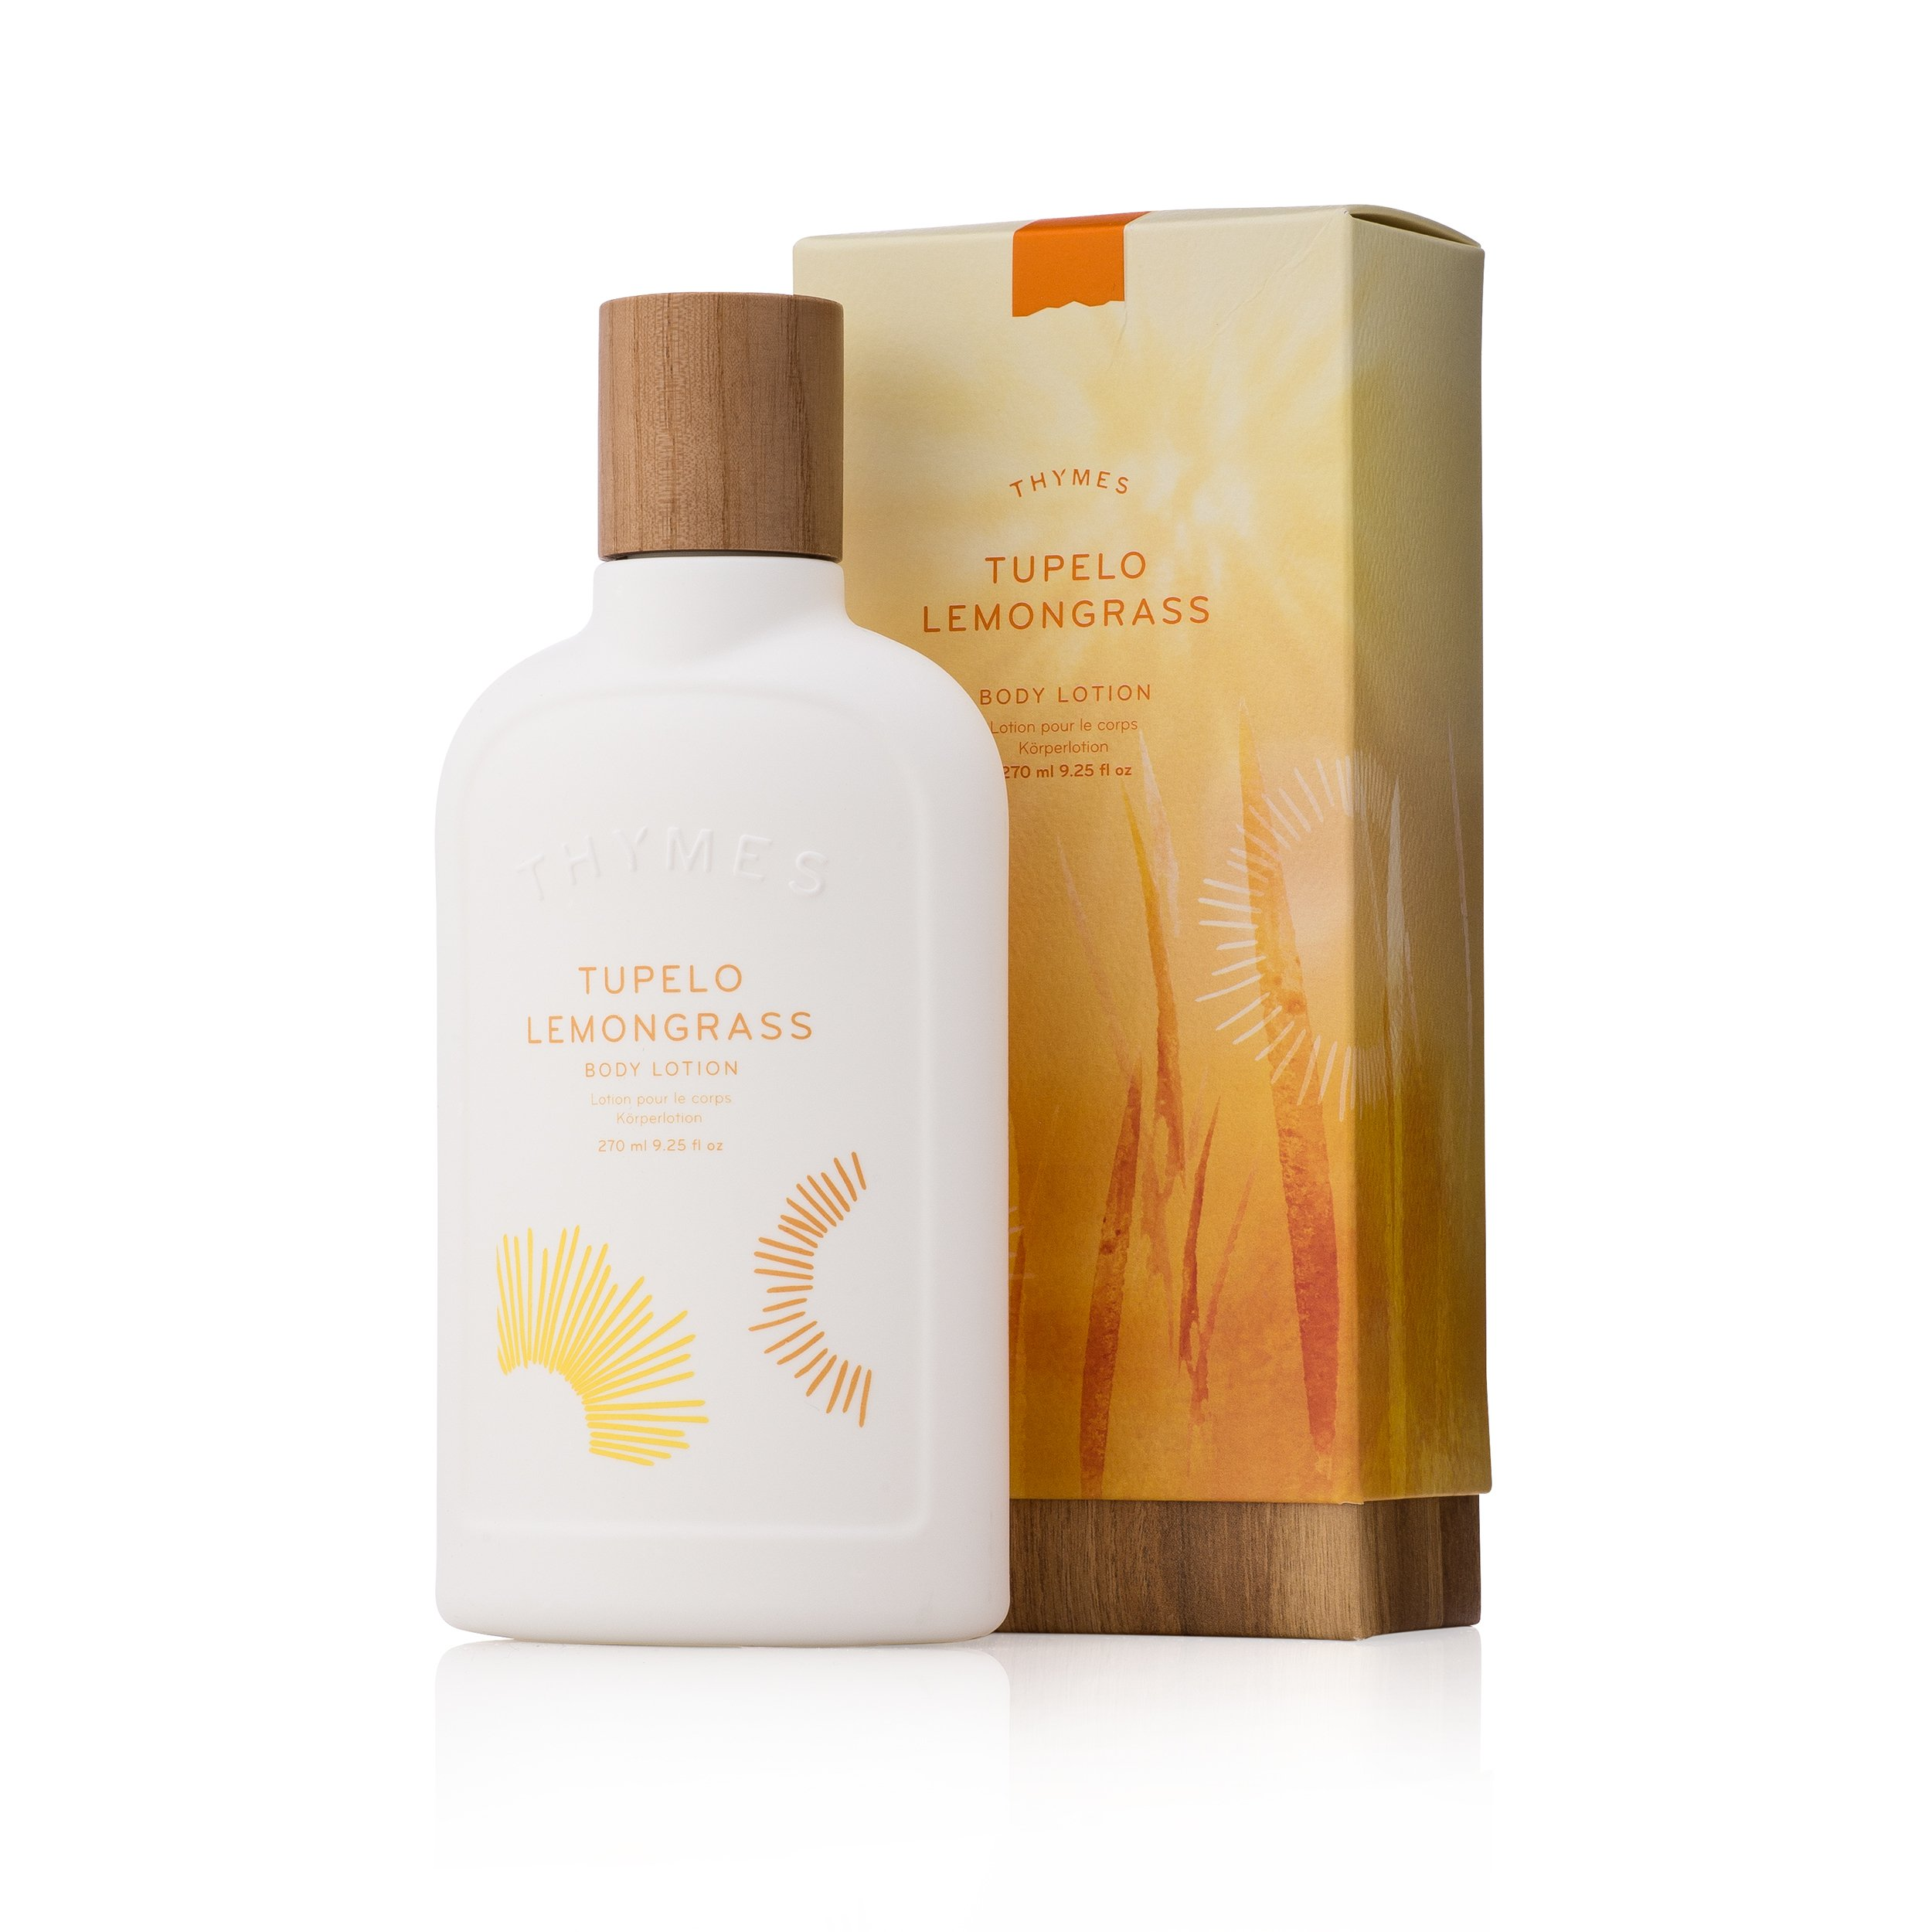 Thymes - Tupelo Lemongrass Body Lotion - With Moisturizing Shea Butter, Vitamin E, and Sunny Citrus Scent - 9.25 oz by Thymes